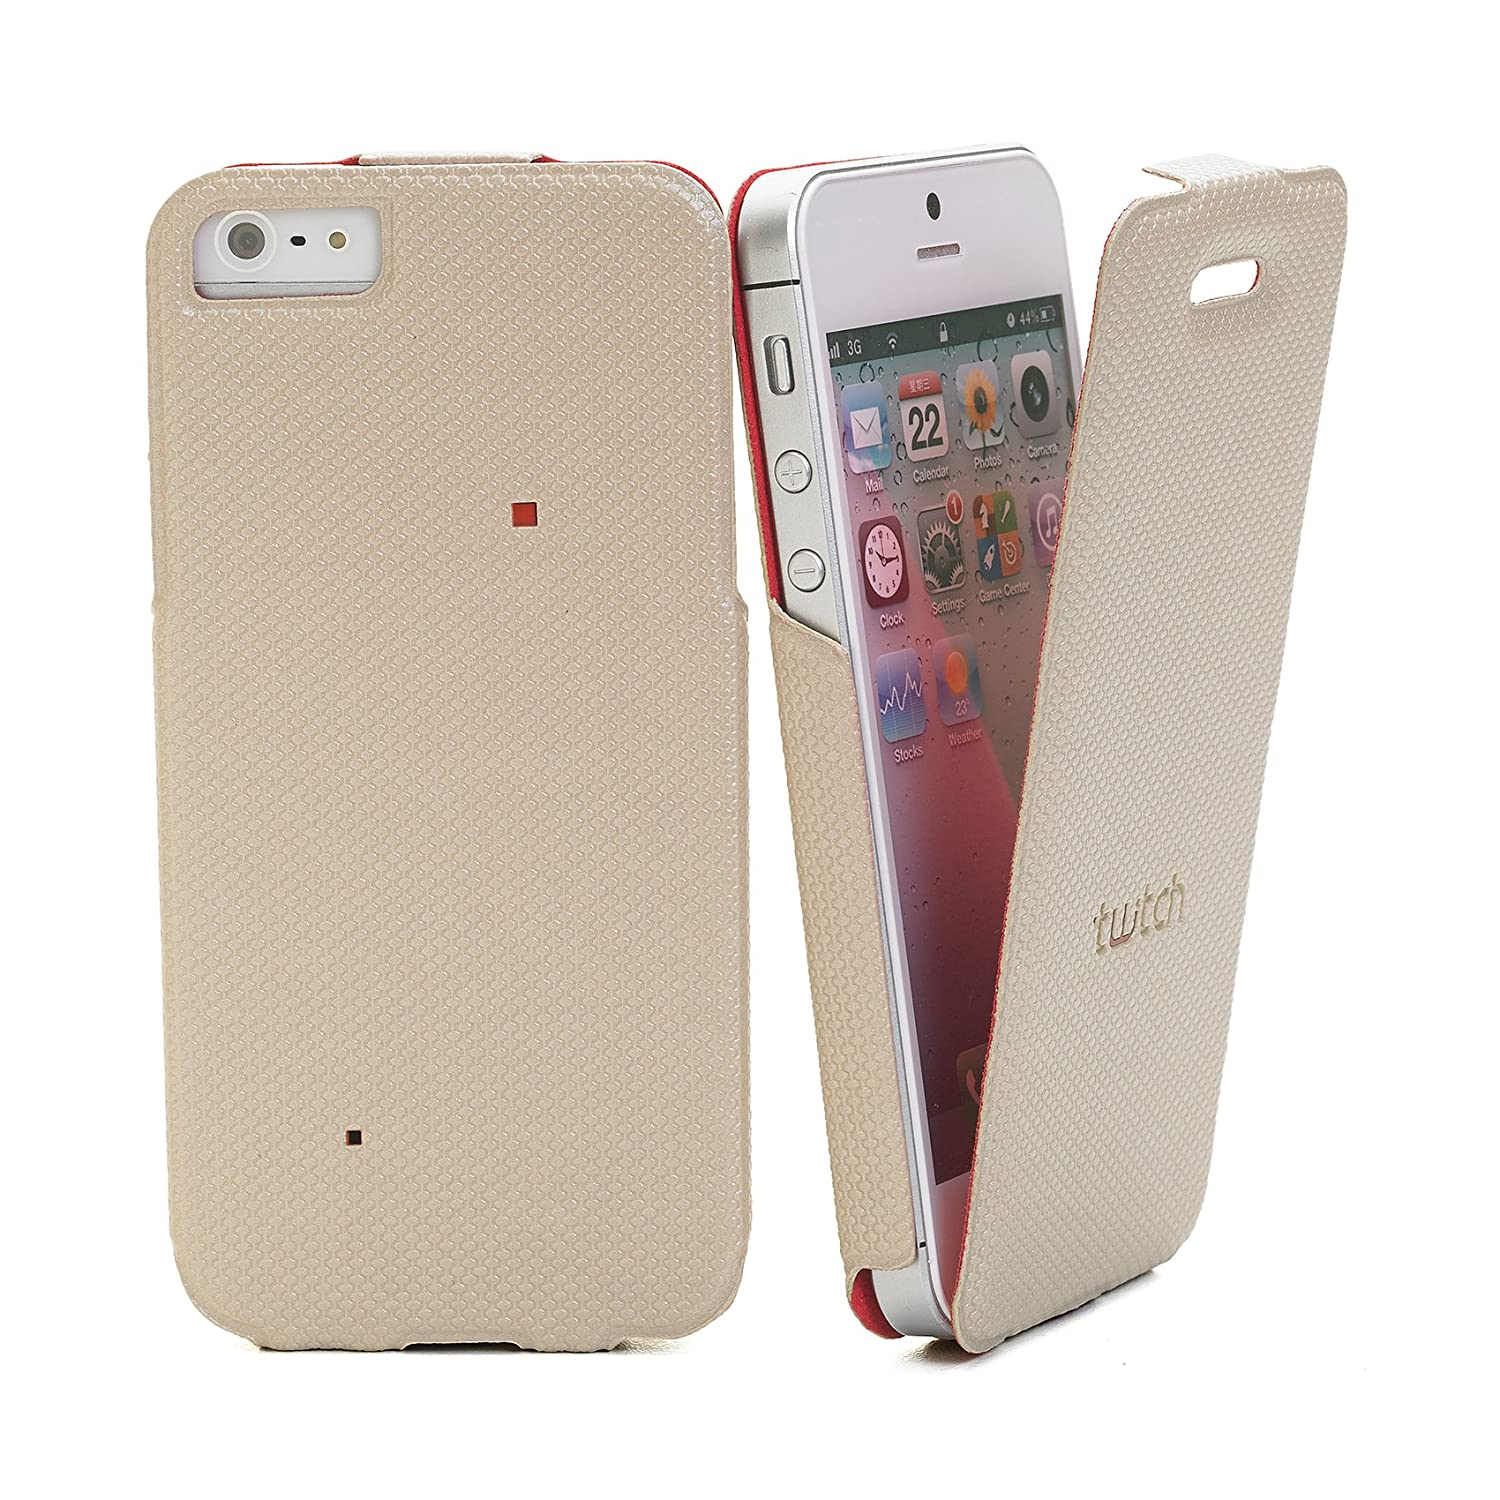 Amazon.com: Twitch Flip Case Cover for iPhone 5S – Beige/Red ...